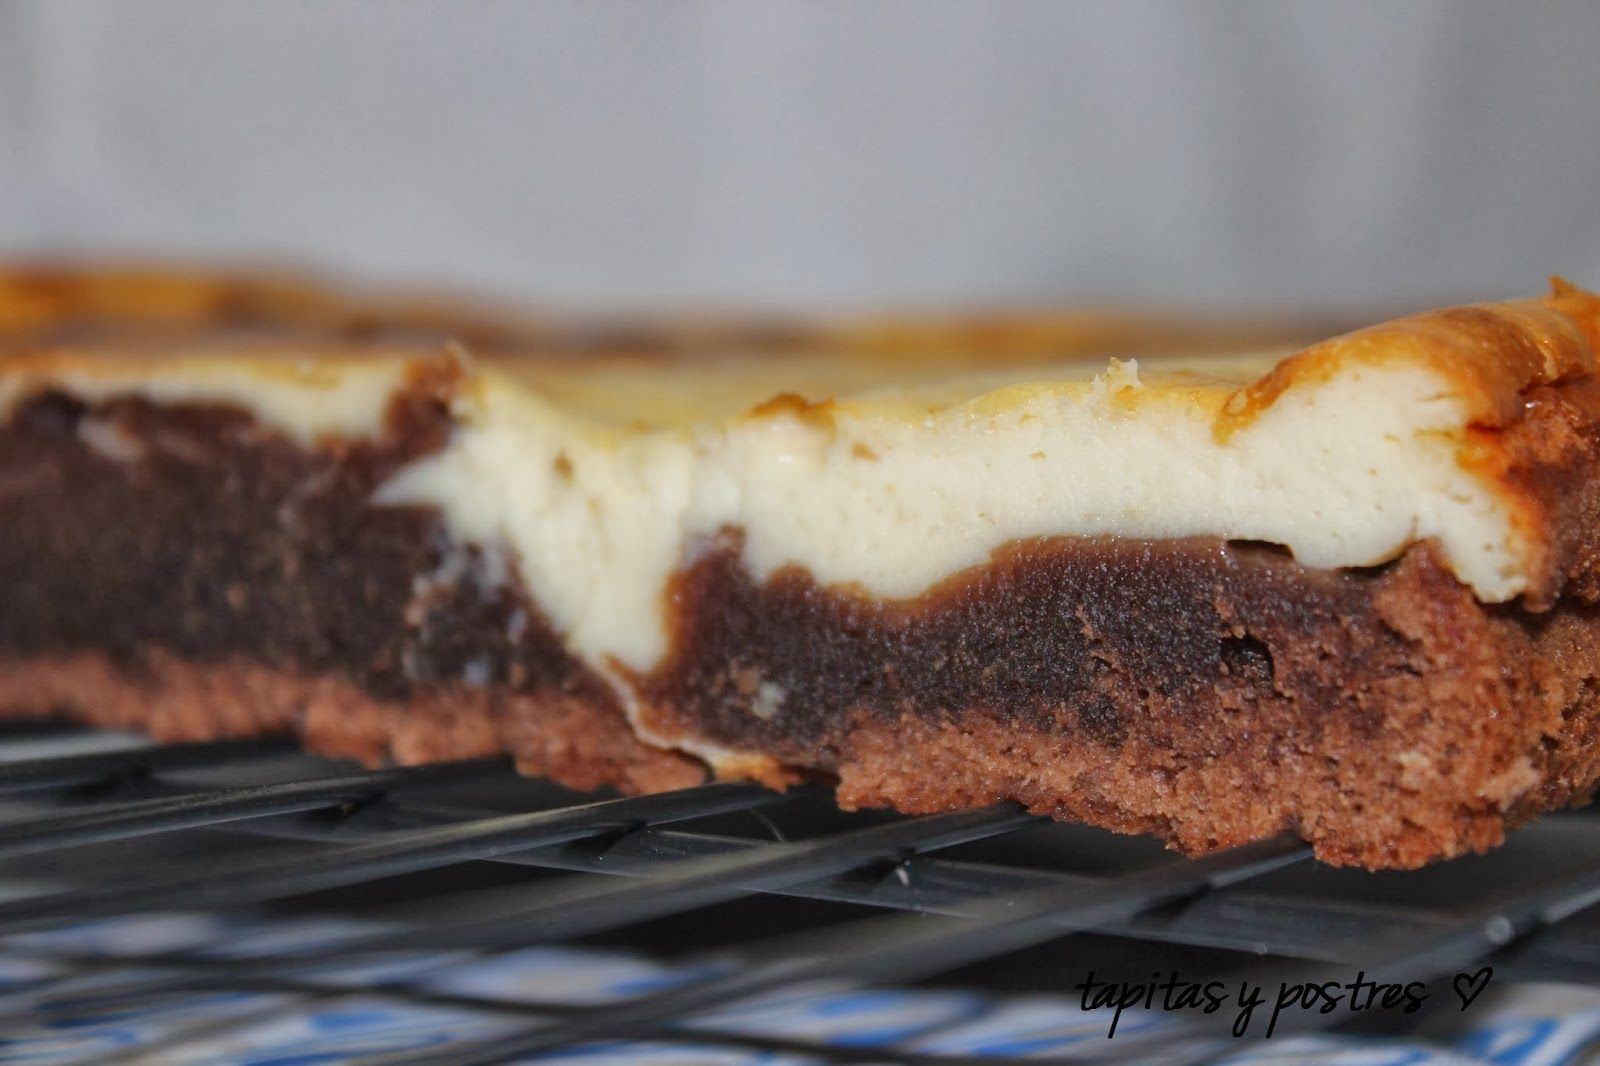 Tapitas y Postres: Brownie de chocolate y queso